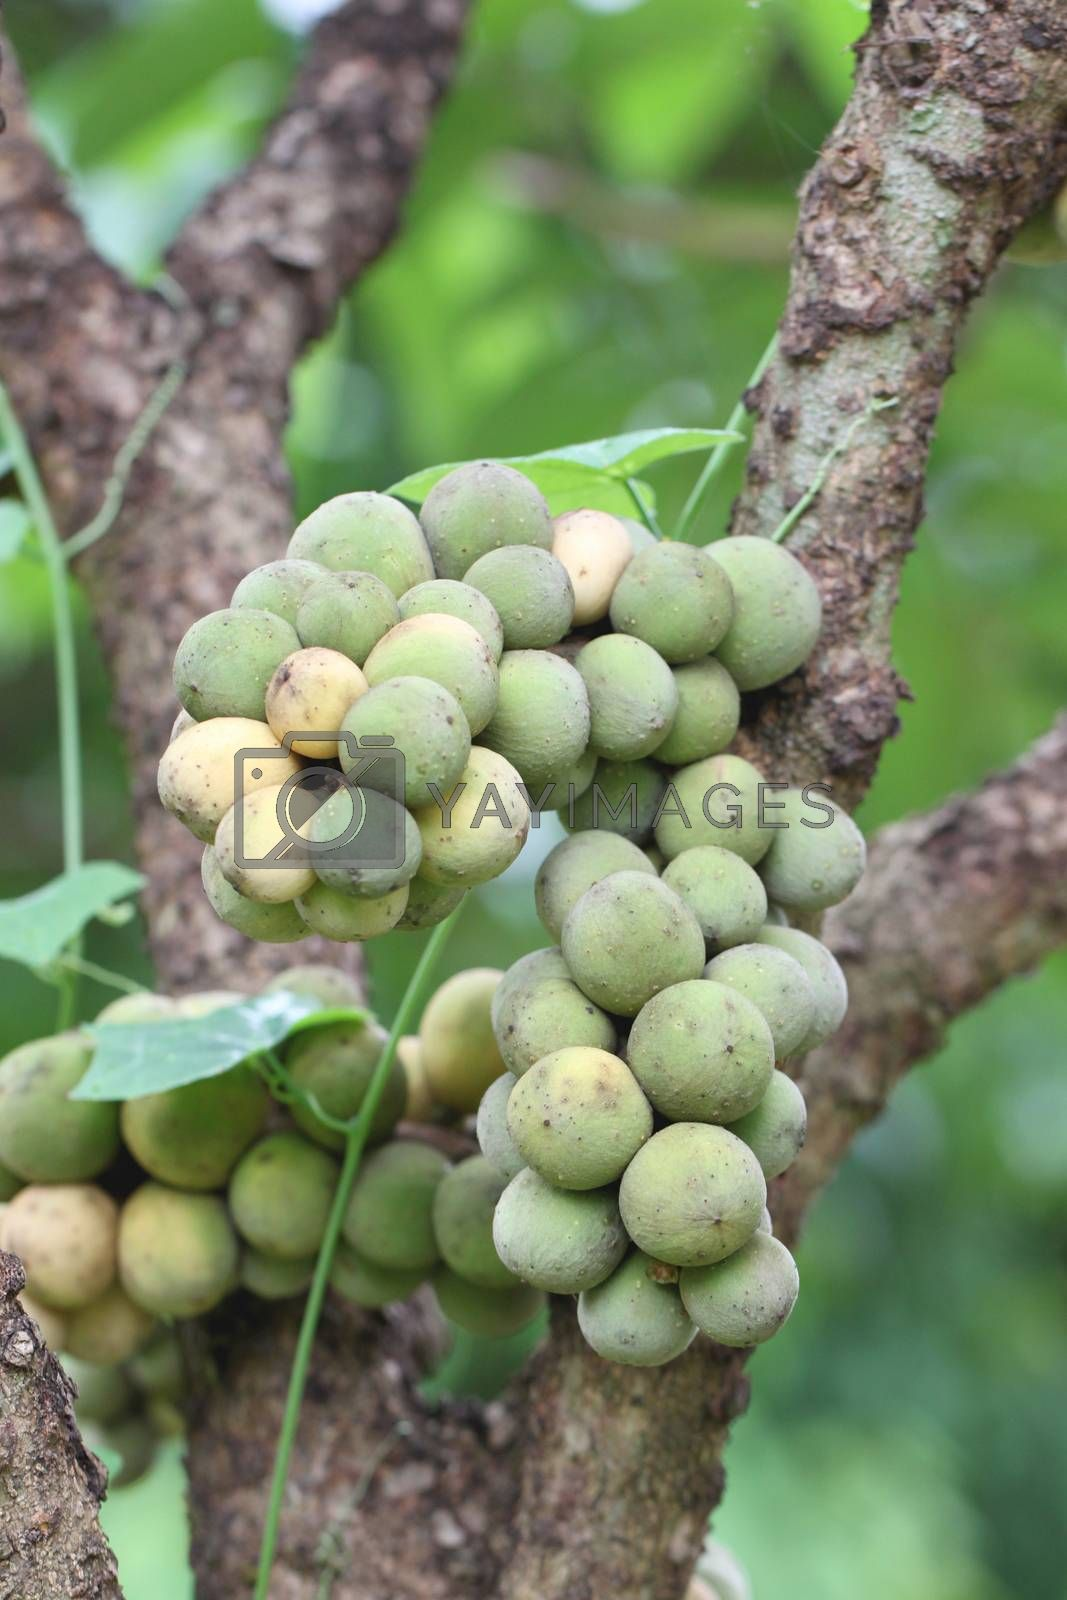 fresh wollongong fruits on tree in the orchard.